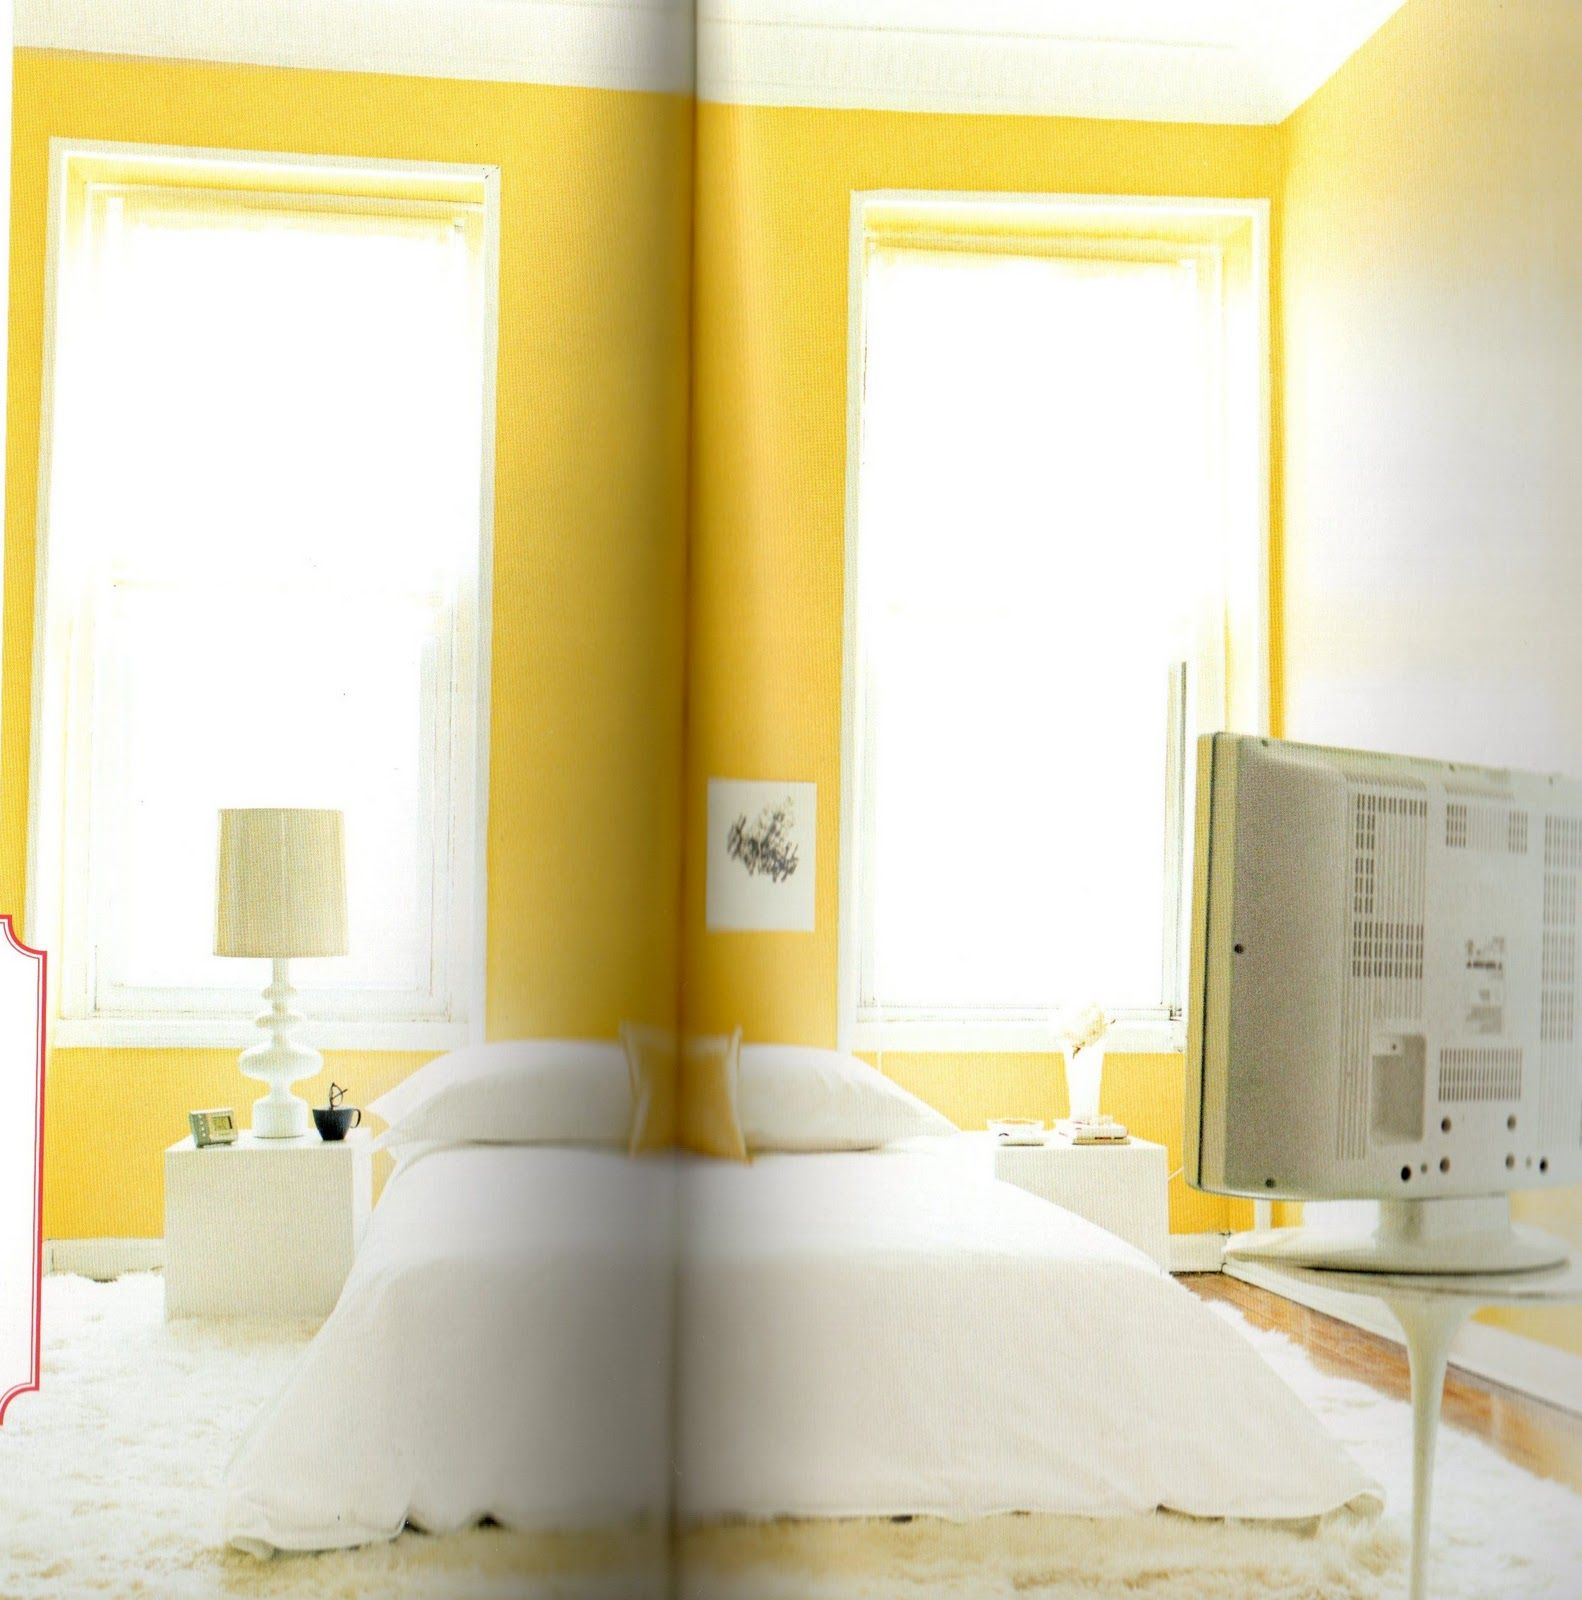 Window well decoration ideas  yellow roomnesshuge windows sheer drapery and the white work